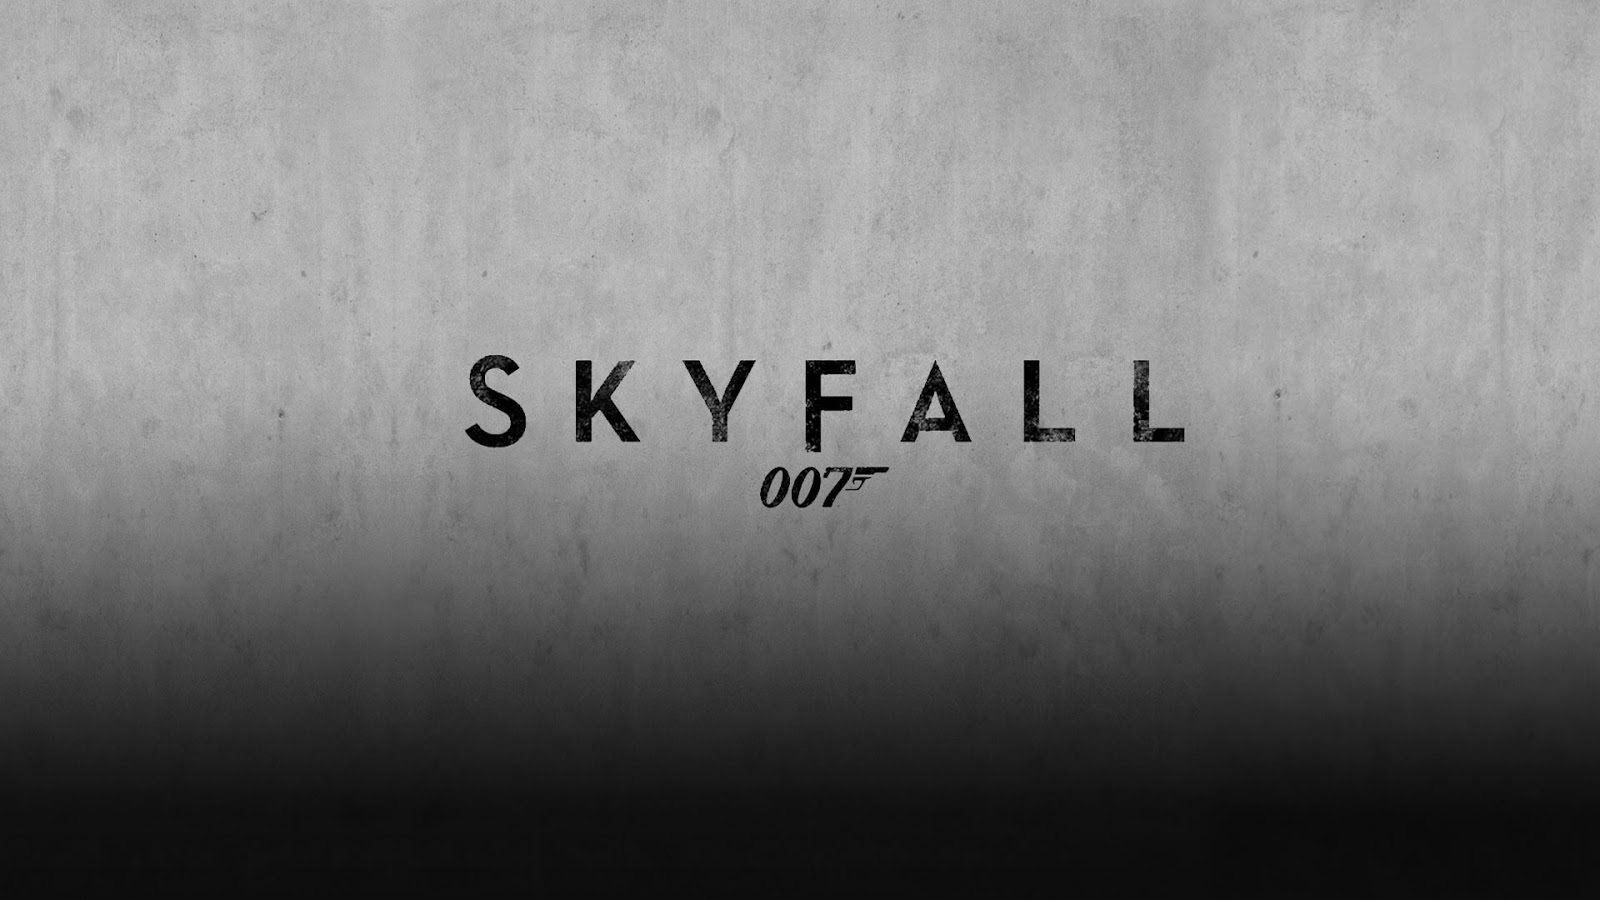 Free Download James Bond 007 Movie Skyfall HD Wallpapers for iPad 3 and iPad mini | Tips and ...